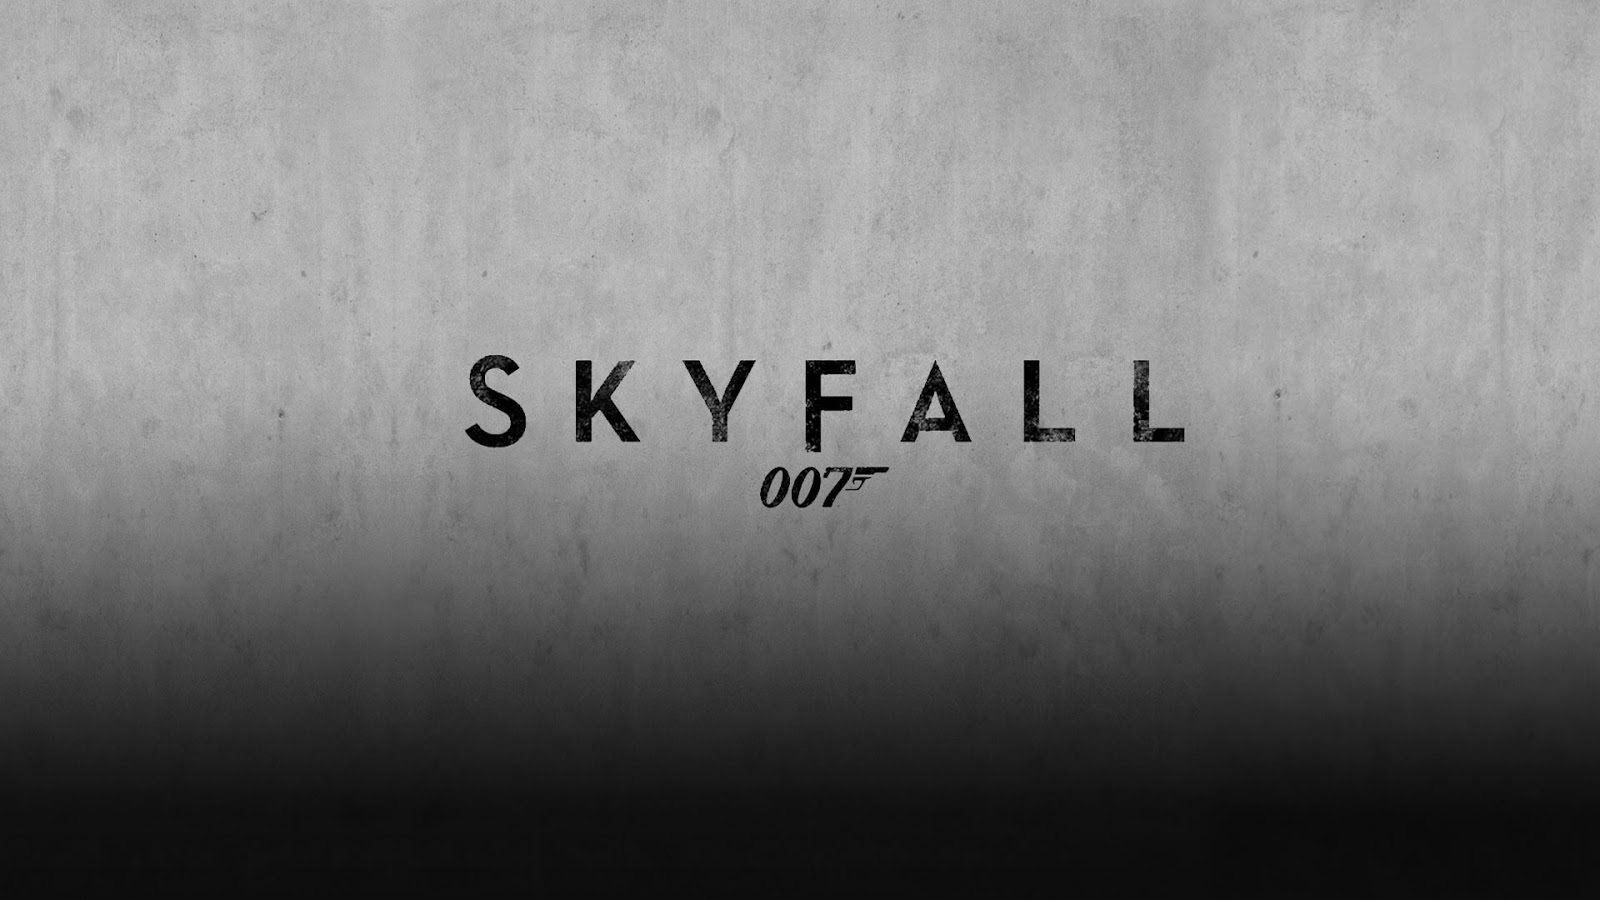 Free Download James Bond 007 Movie Skyfall HD Wallpapers for iPad 3 and iPad mini | Tips and ...